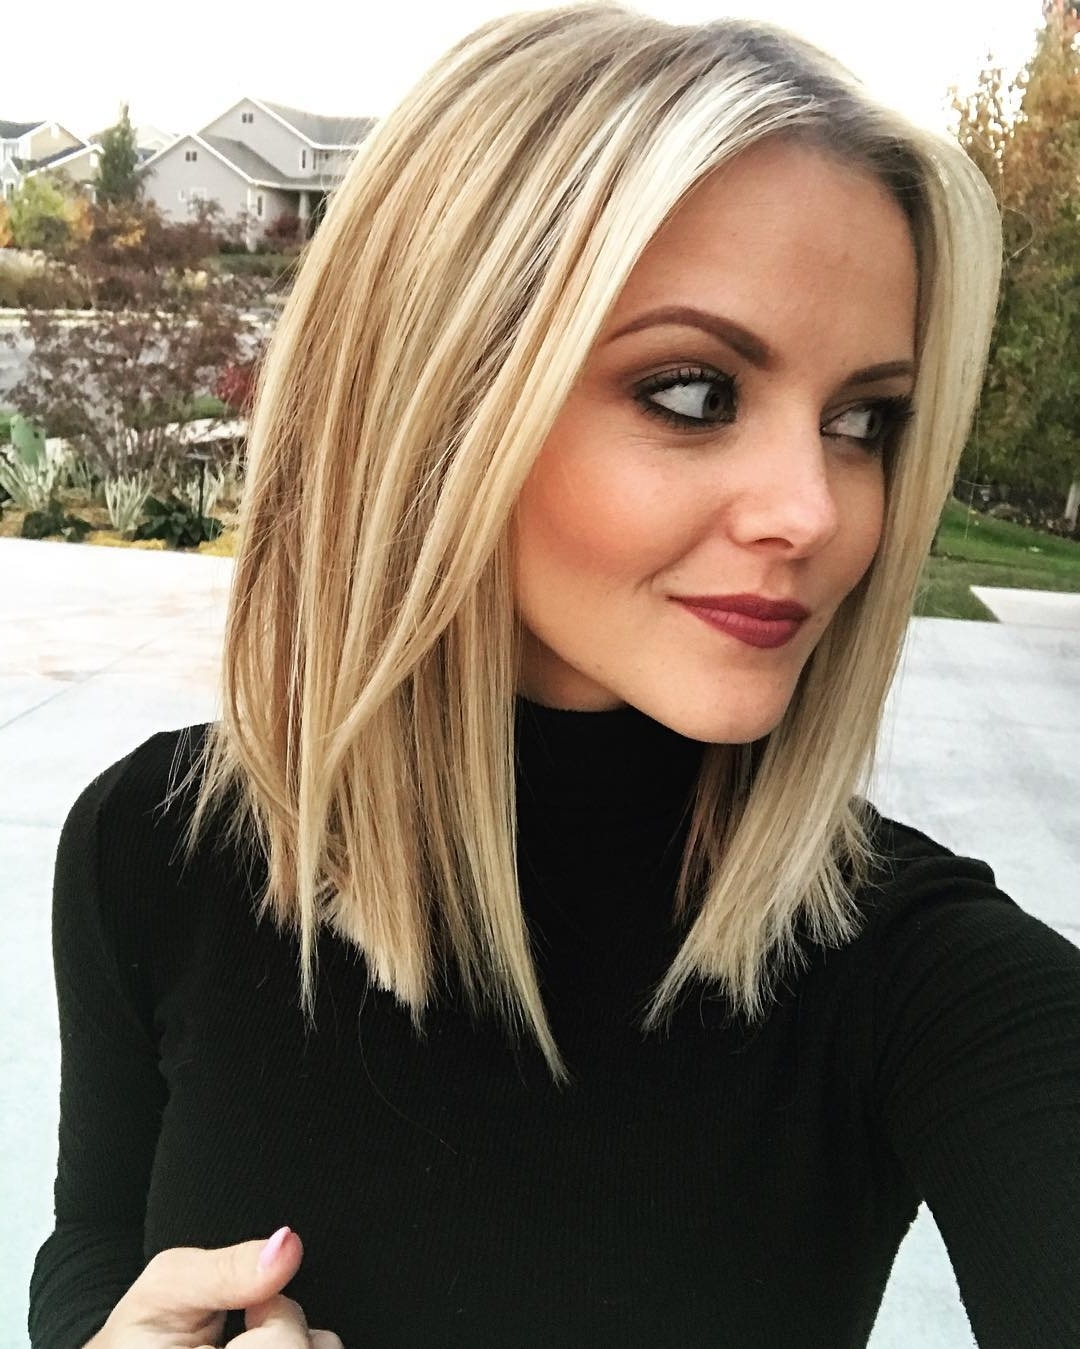 10 Stylish & Sweet Lob Haircut Ideas, 2018 Shoulder Length Hairstyles Throughout Favorite Casual And Classic Blonde Hairstyles (View 1 of 20)